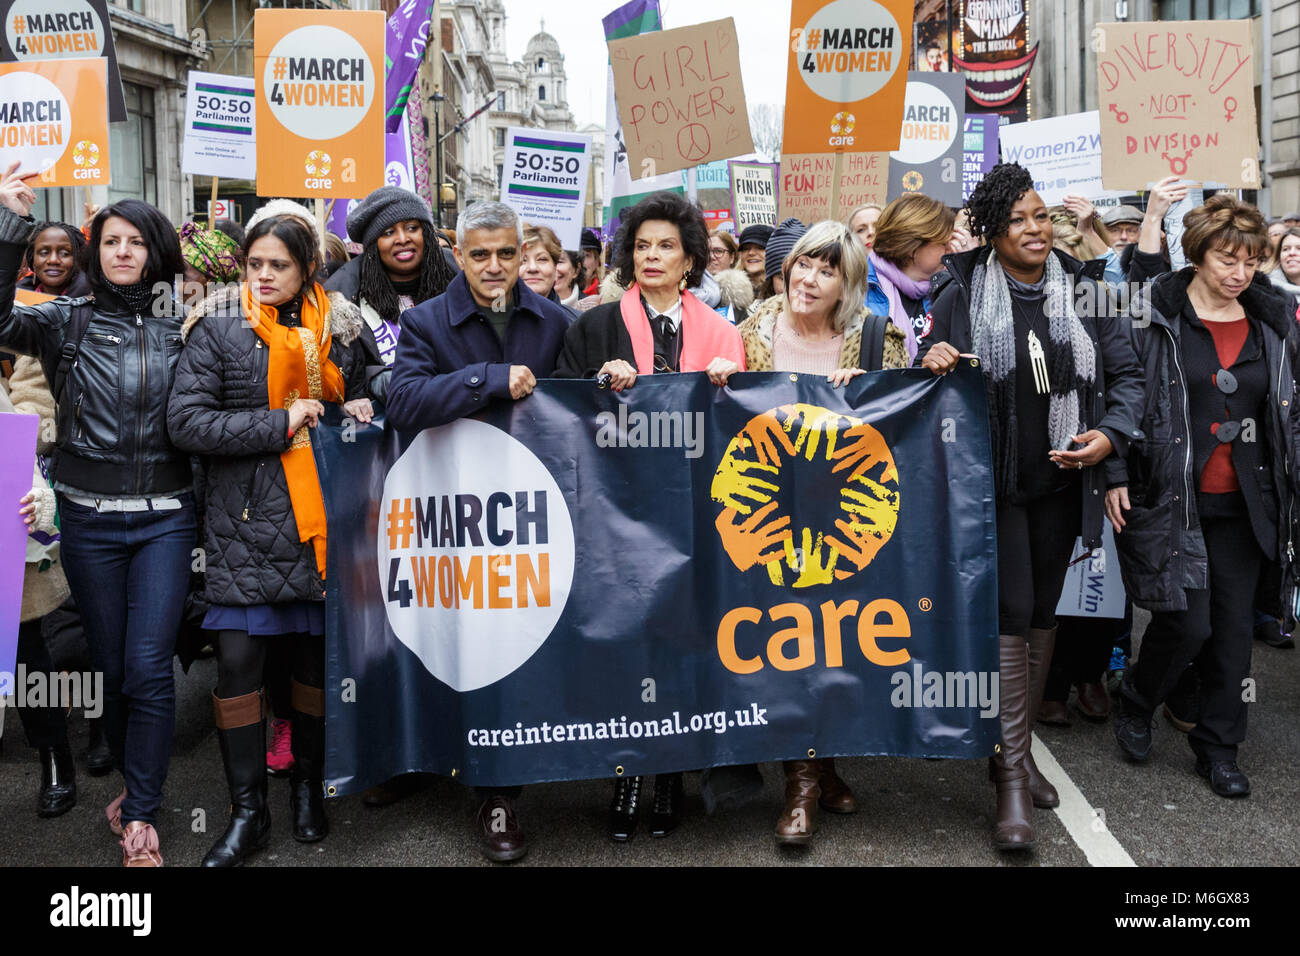 Westminster, London, 4th March 2018. Mayor Sadiq Khan leads the march with Bianca Jagger, Sandi Tonsvik, Dawn Butler - Stock Image